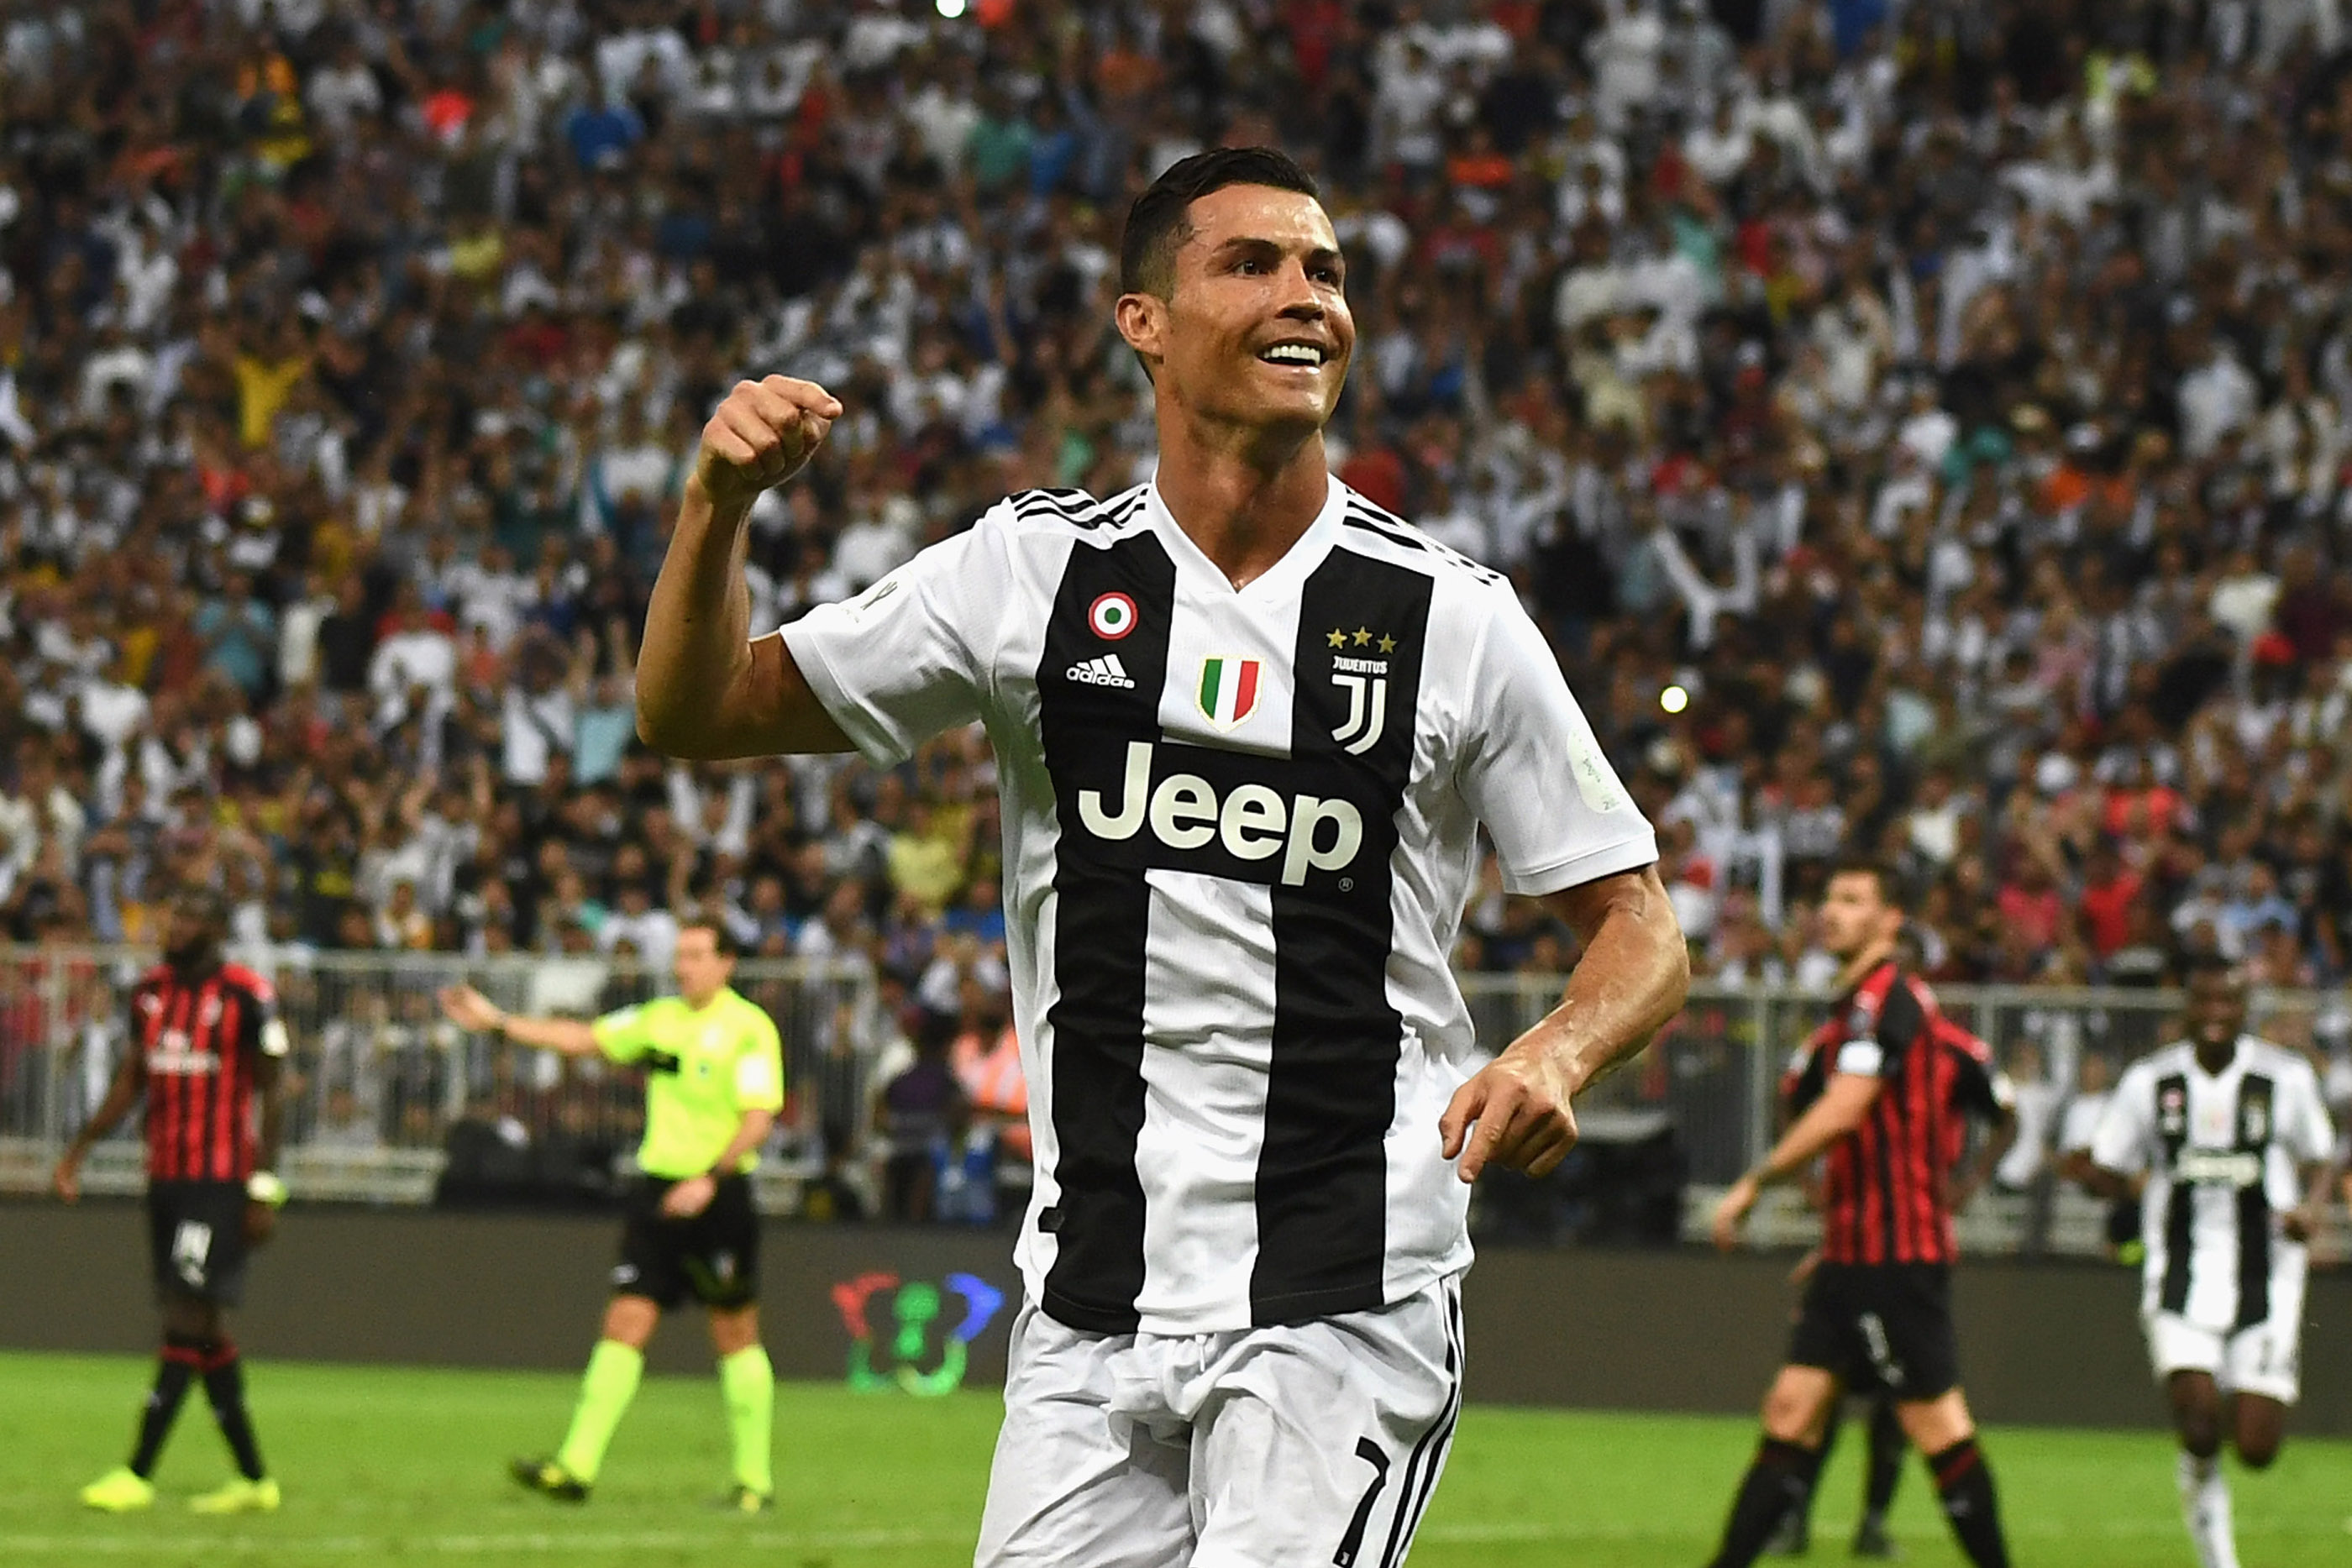 Cristiano Ronaldo of Juventus celebrates after scoring his sides first goal during the Italian Supercup match between Juventus and AC Milan at King Abdullah Sports City on January 16, 2019 in Jeddah, Saudi Arabia.